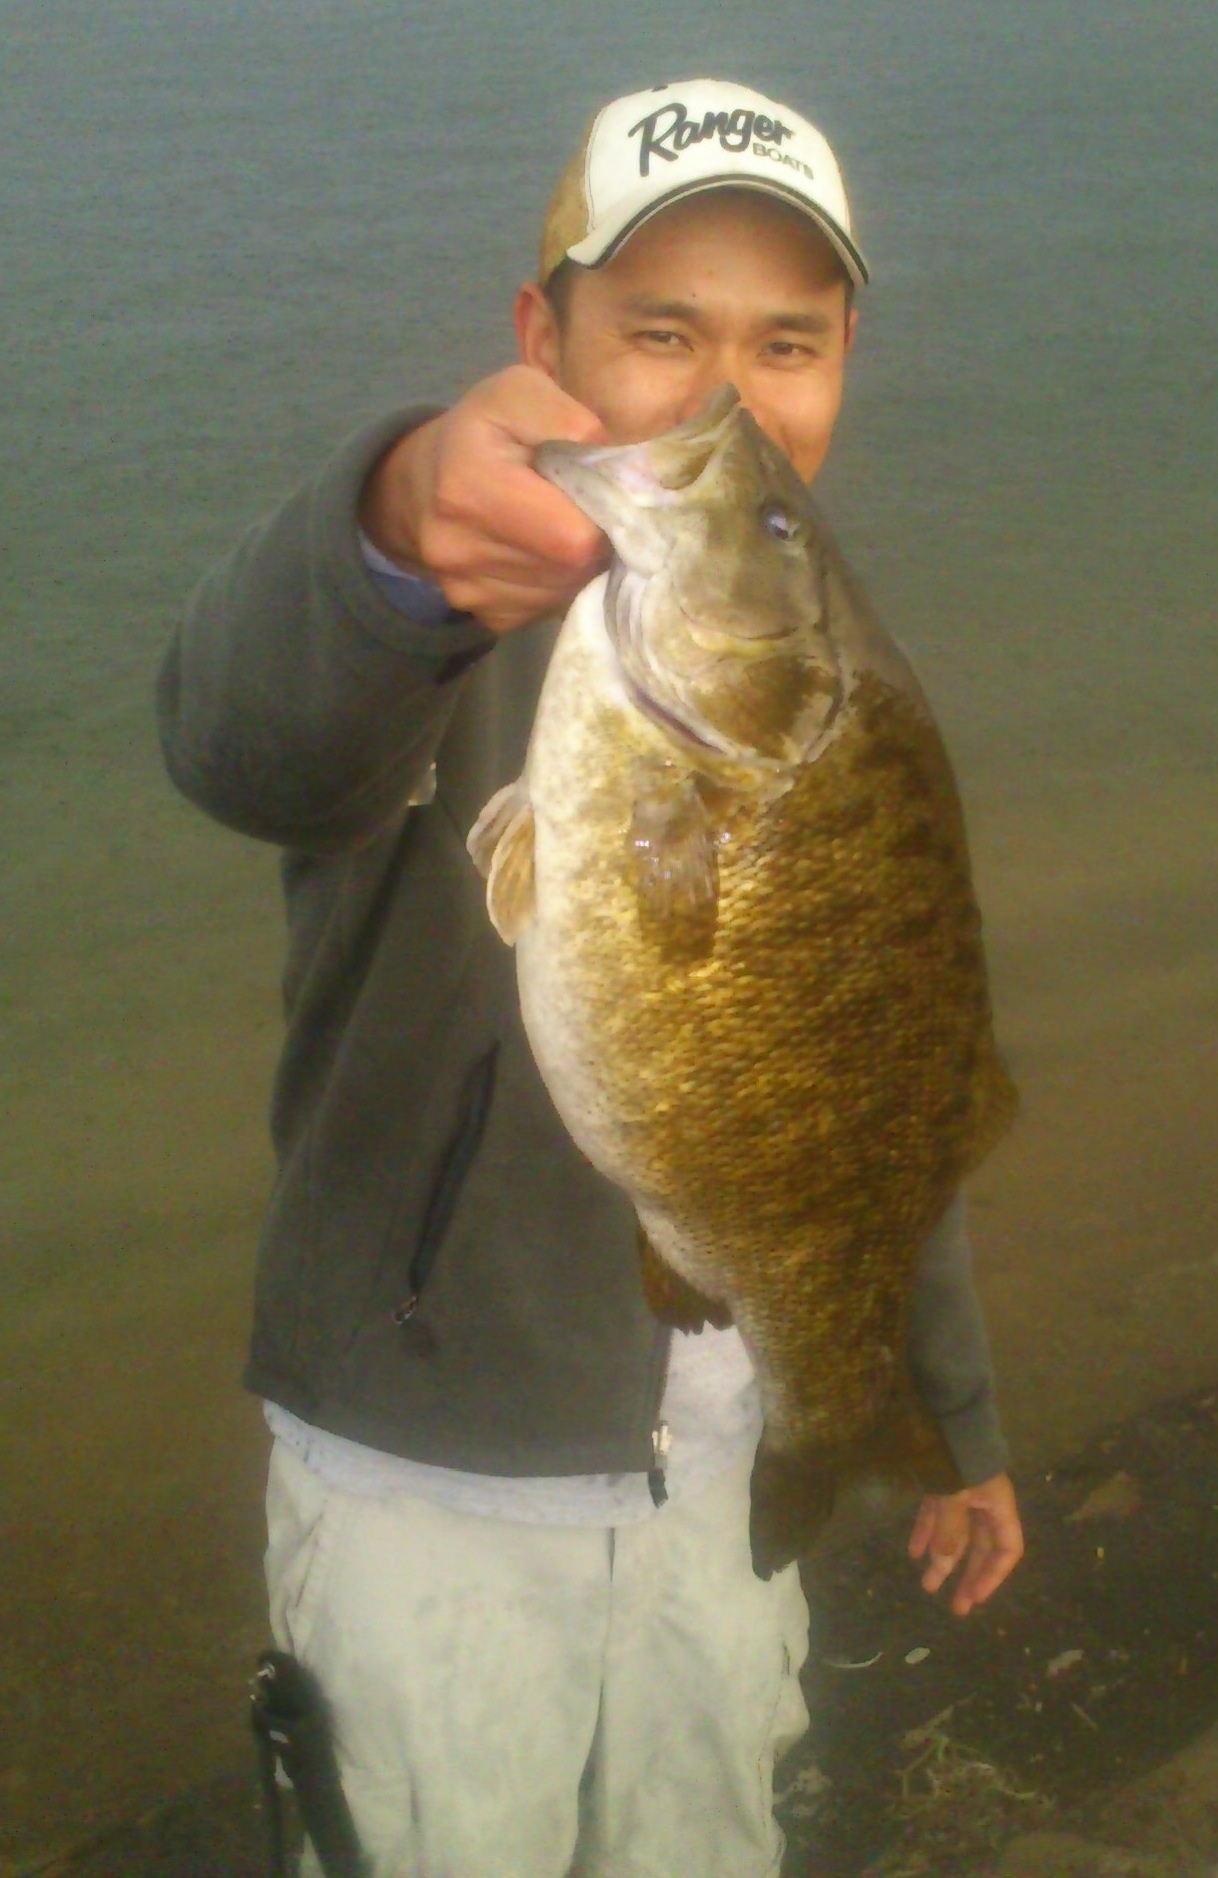 Raymond Ong Aurora Colorado    Species: Smallmouth Bass Date Caught: 06/04/2013 Kept / Released: